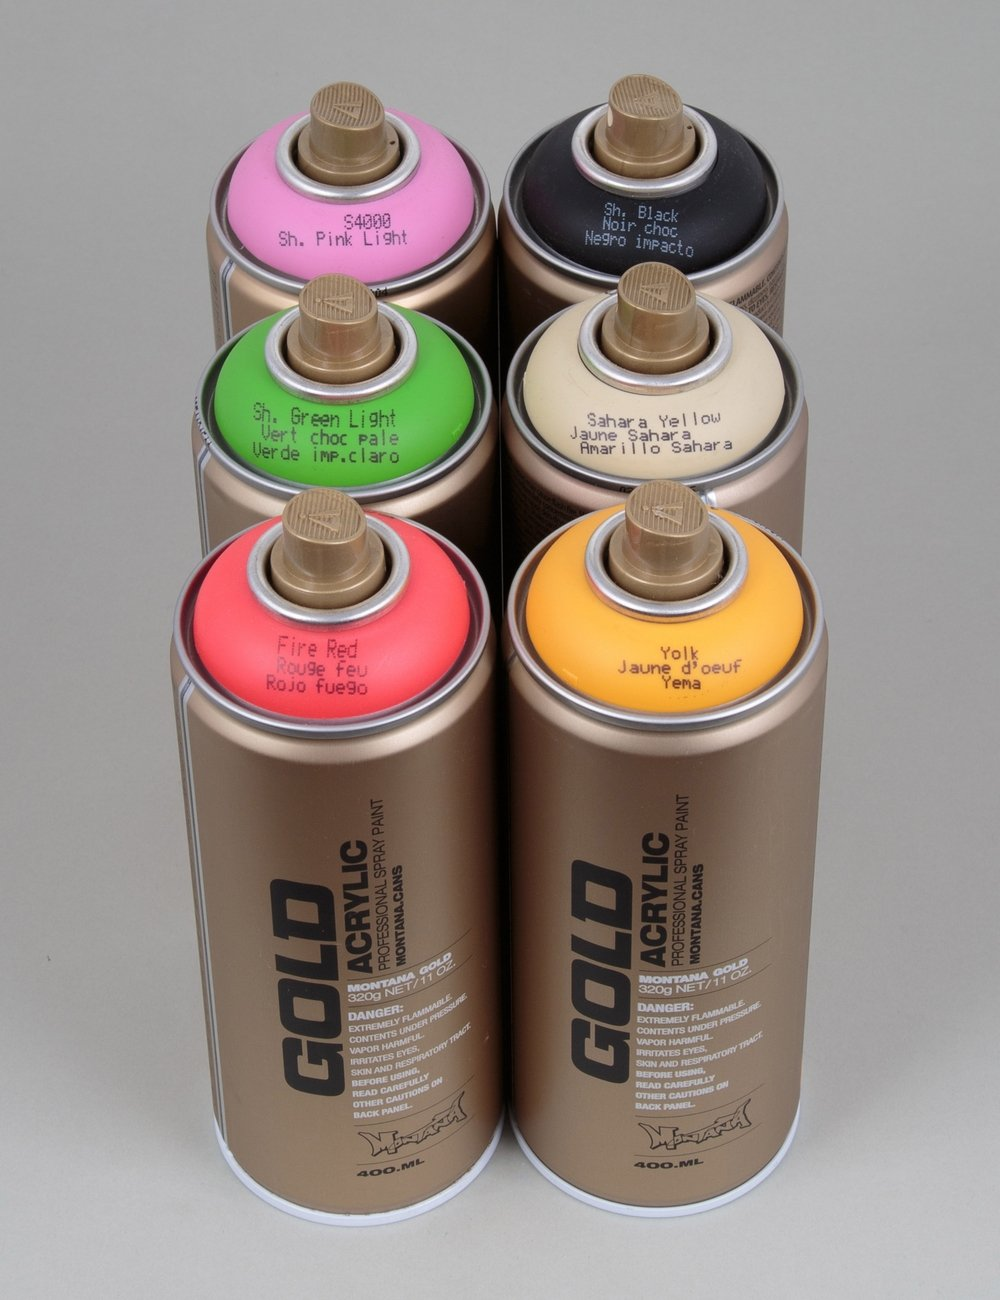 Montana gold spray paint deal 6 cans spray paint supplies from iconsume uk Spray paint supplies